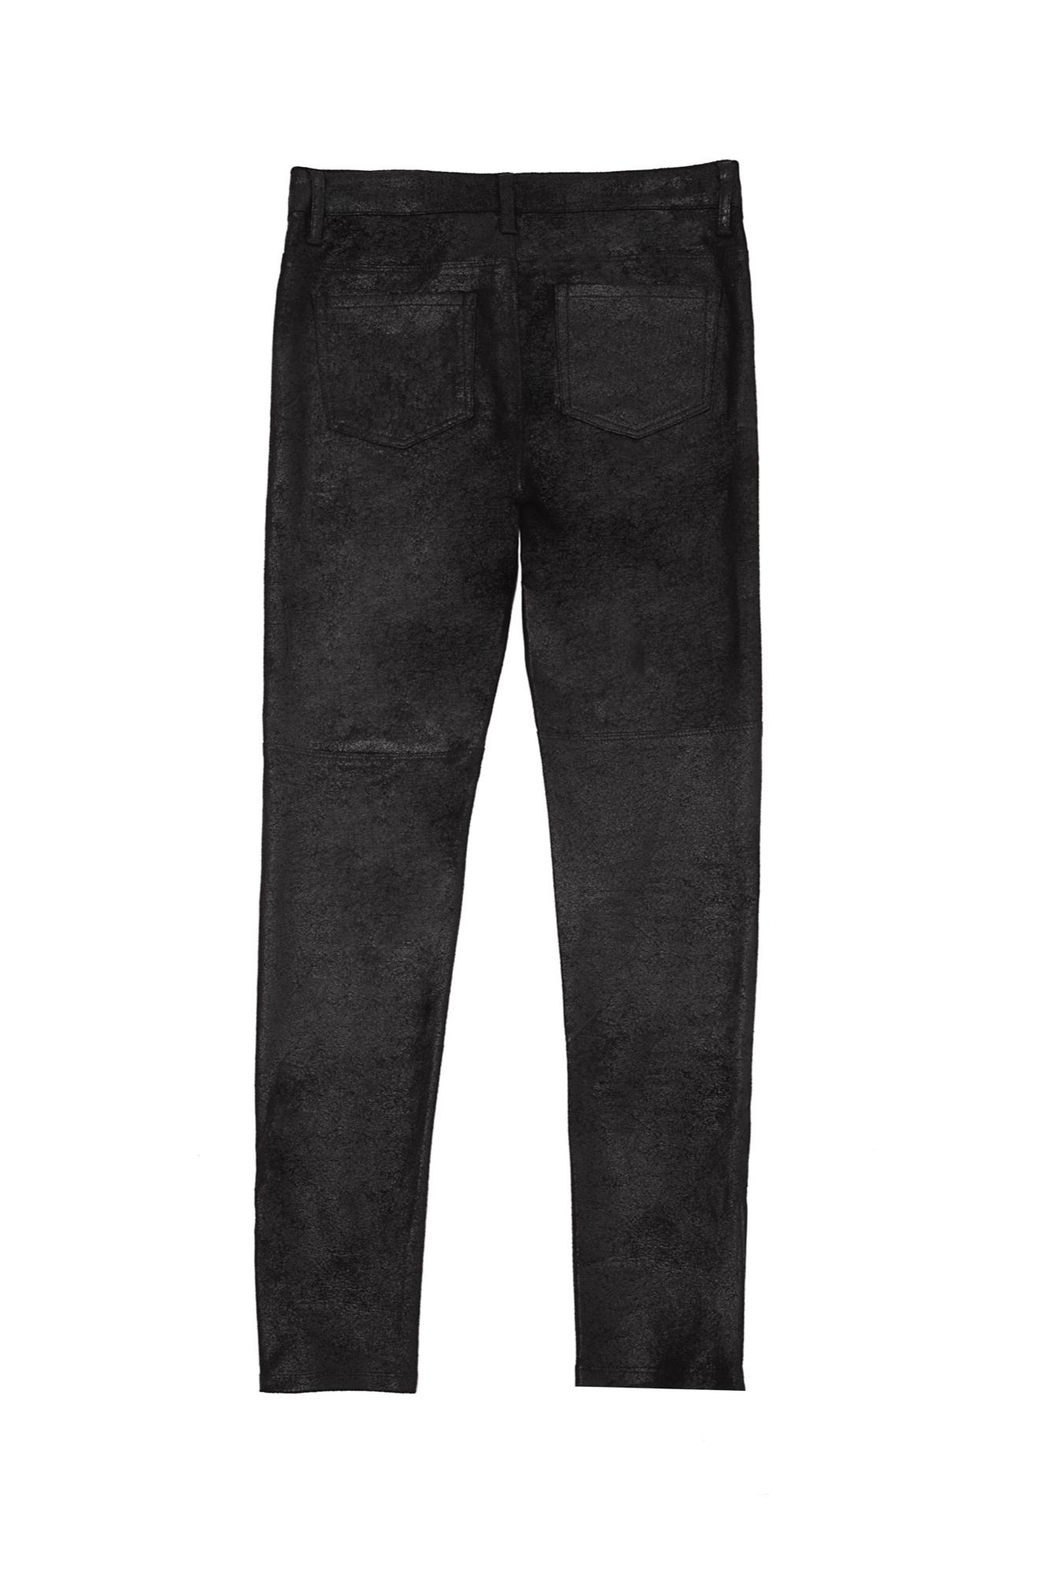 MIA New York Sueded Crackle Pants - Front Full Image